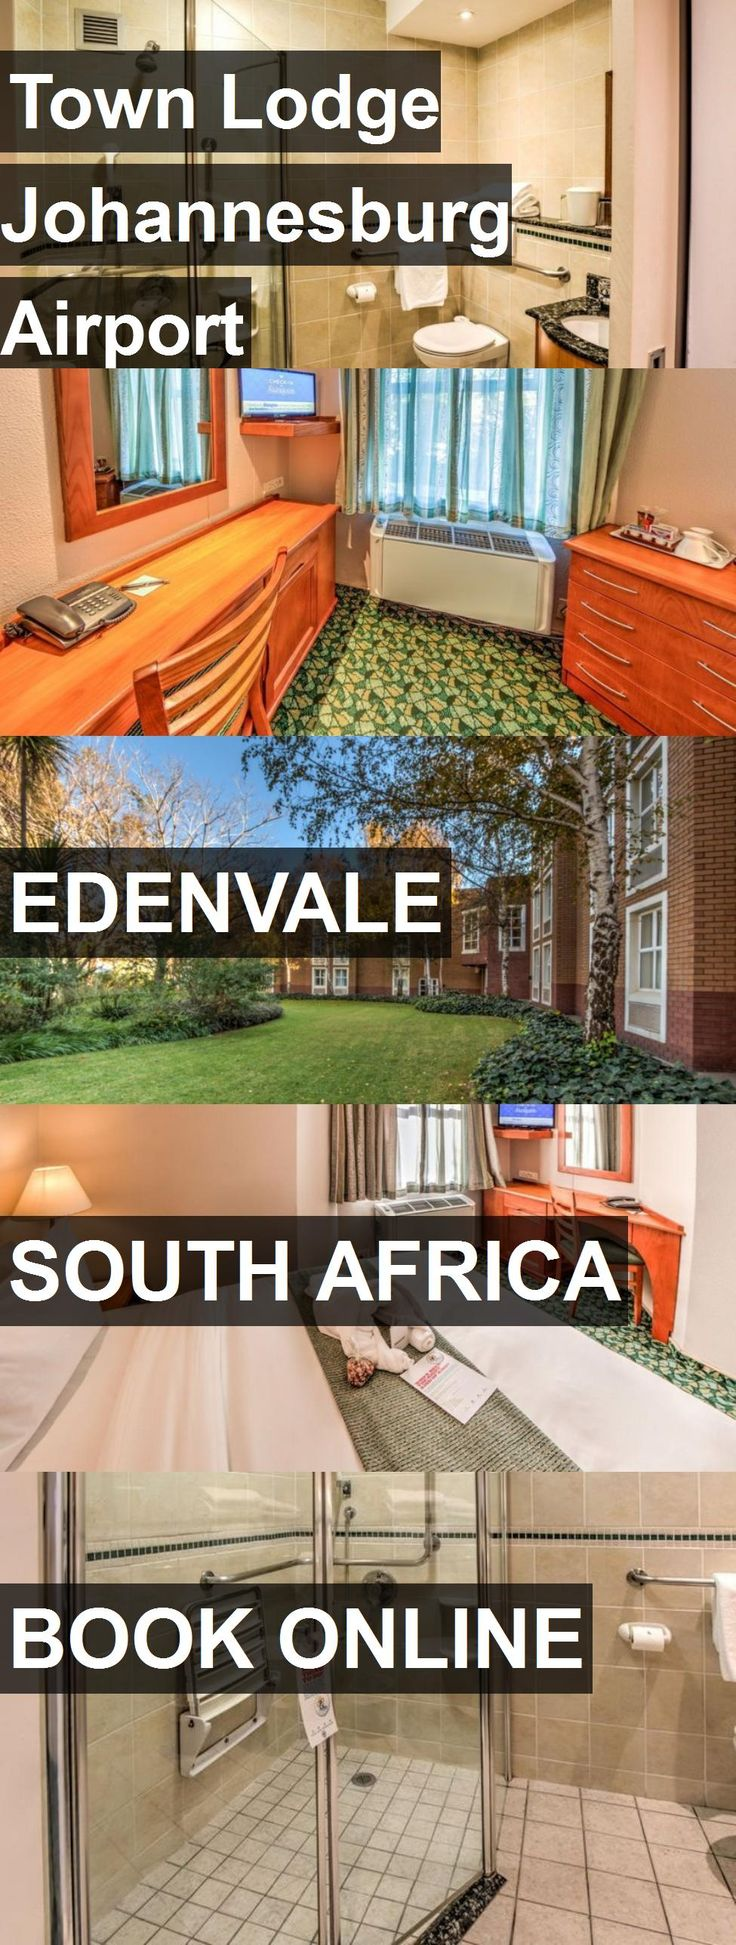 Hotel Town Lodge Johannesburg Airport in Edenvale, South Africa. For more information, photos, reviews and best prices please follow the link. #SouthAfrica #Edenvale #travel #vacation #hotel